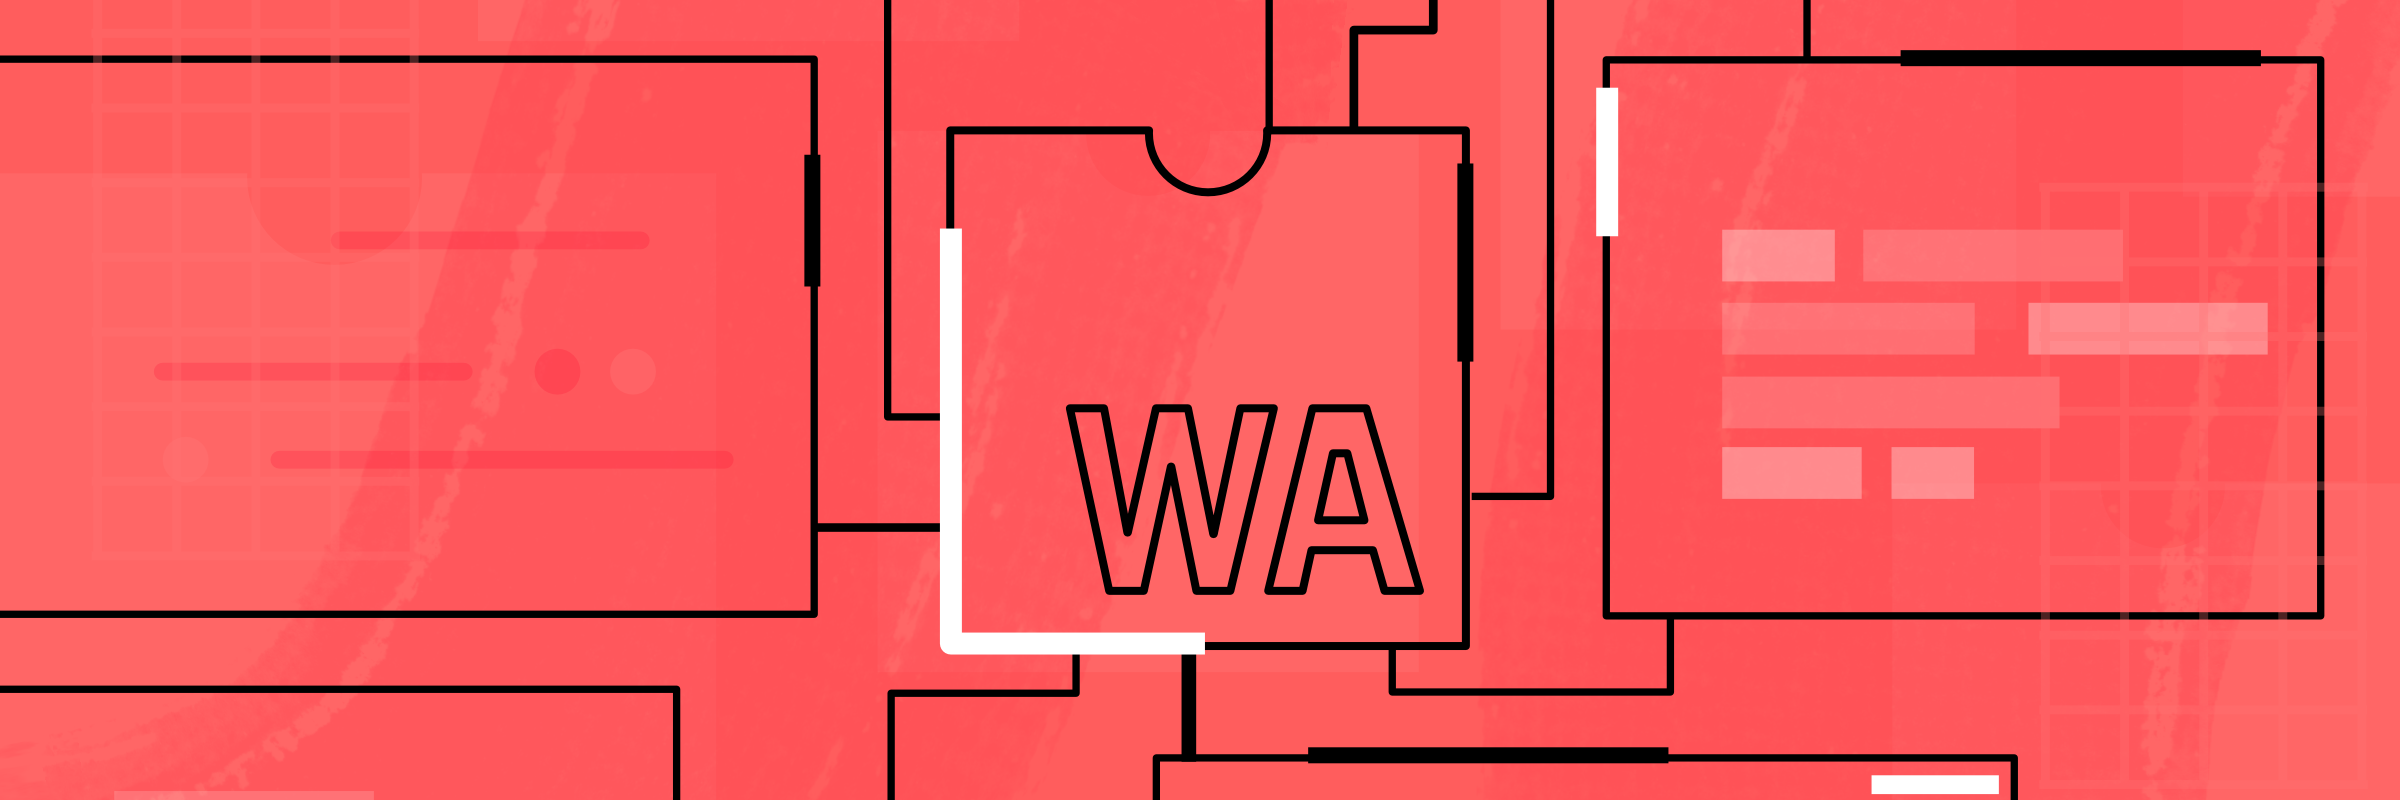 WebAssembly - Running Assembly Code on the Web!